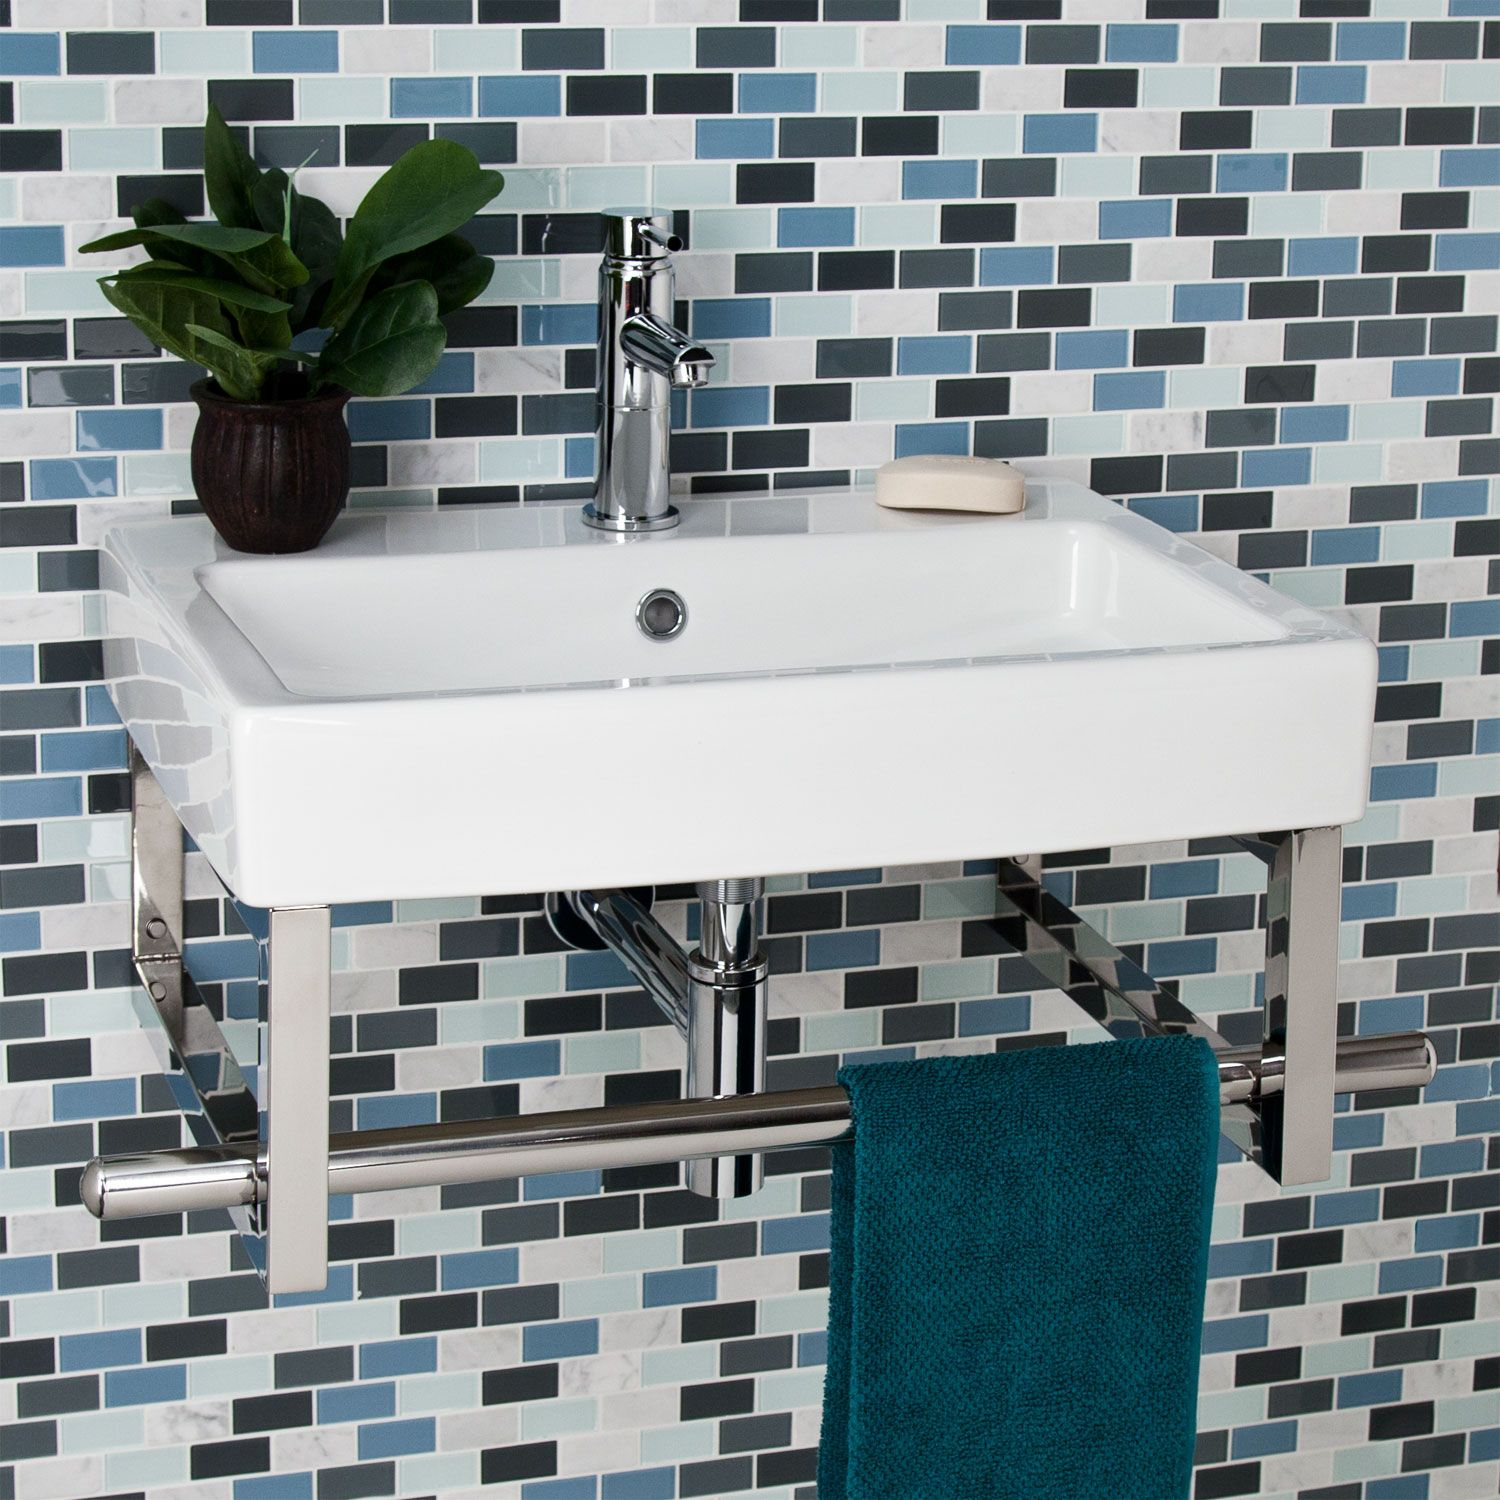 Small wall mount sink with towel bar for bathroom - Rixton Slimline Wall Mount Sink With Towel Bar Small Sinksmall Bathroombathroom